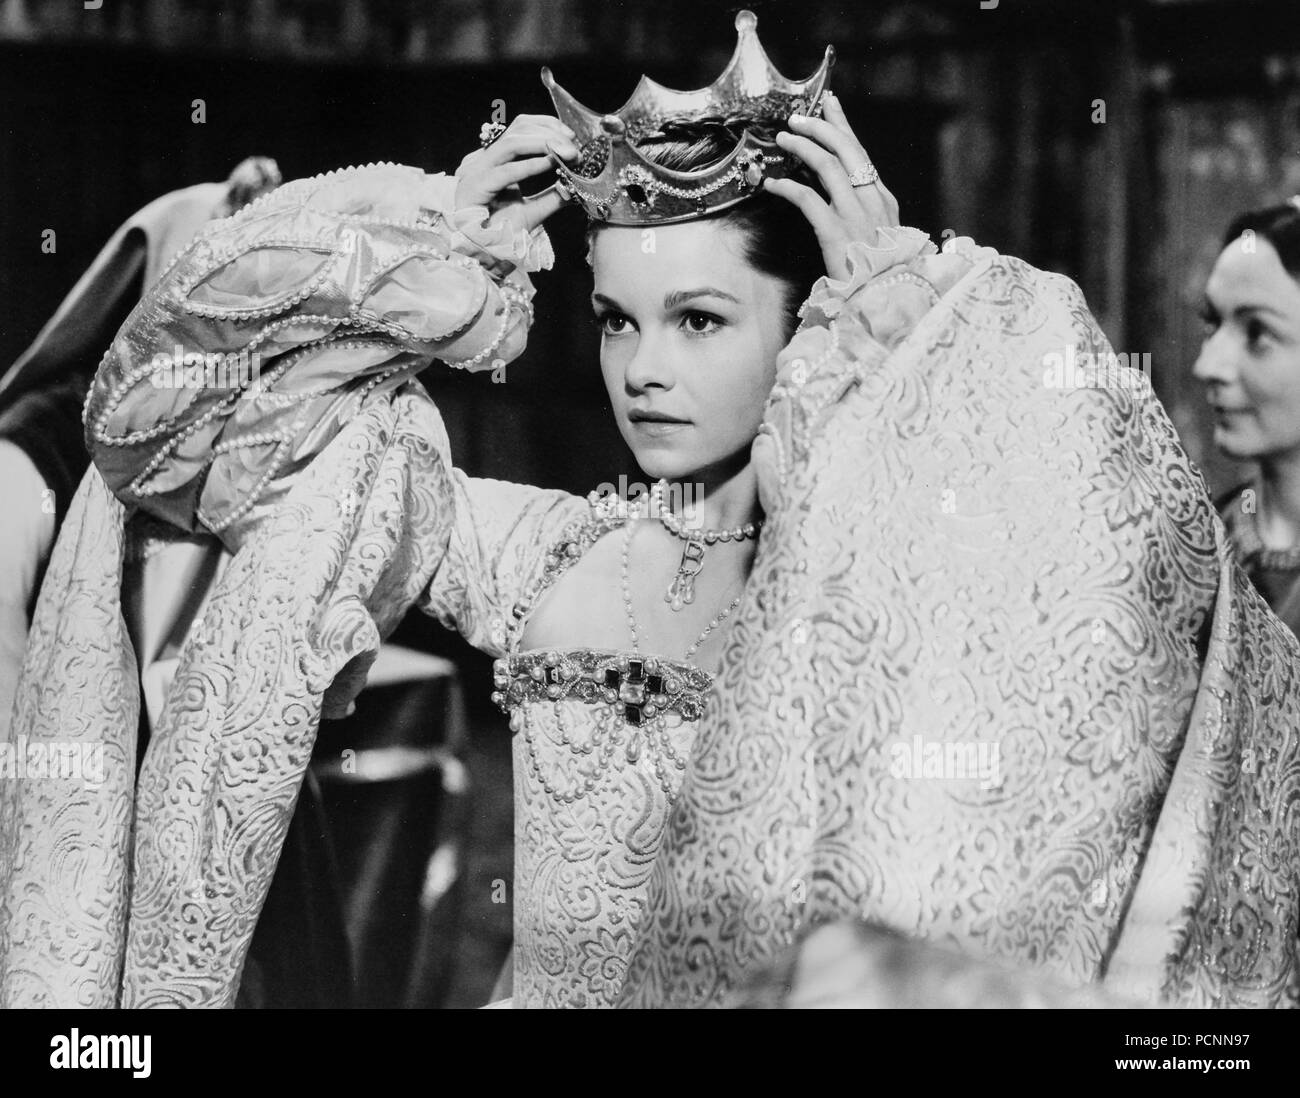 genevieve bujold, anne of the thousand days, 1969 Stock Photo